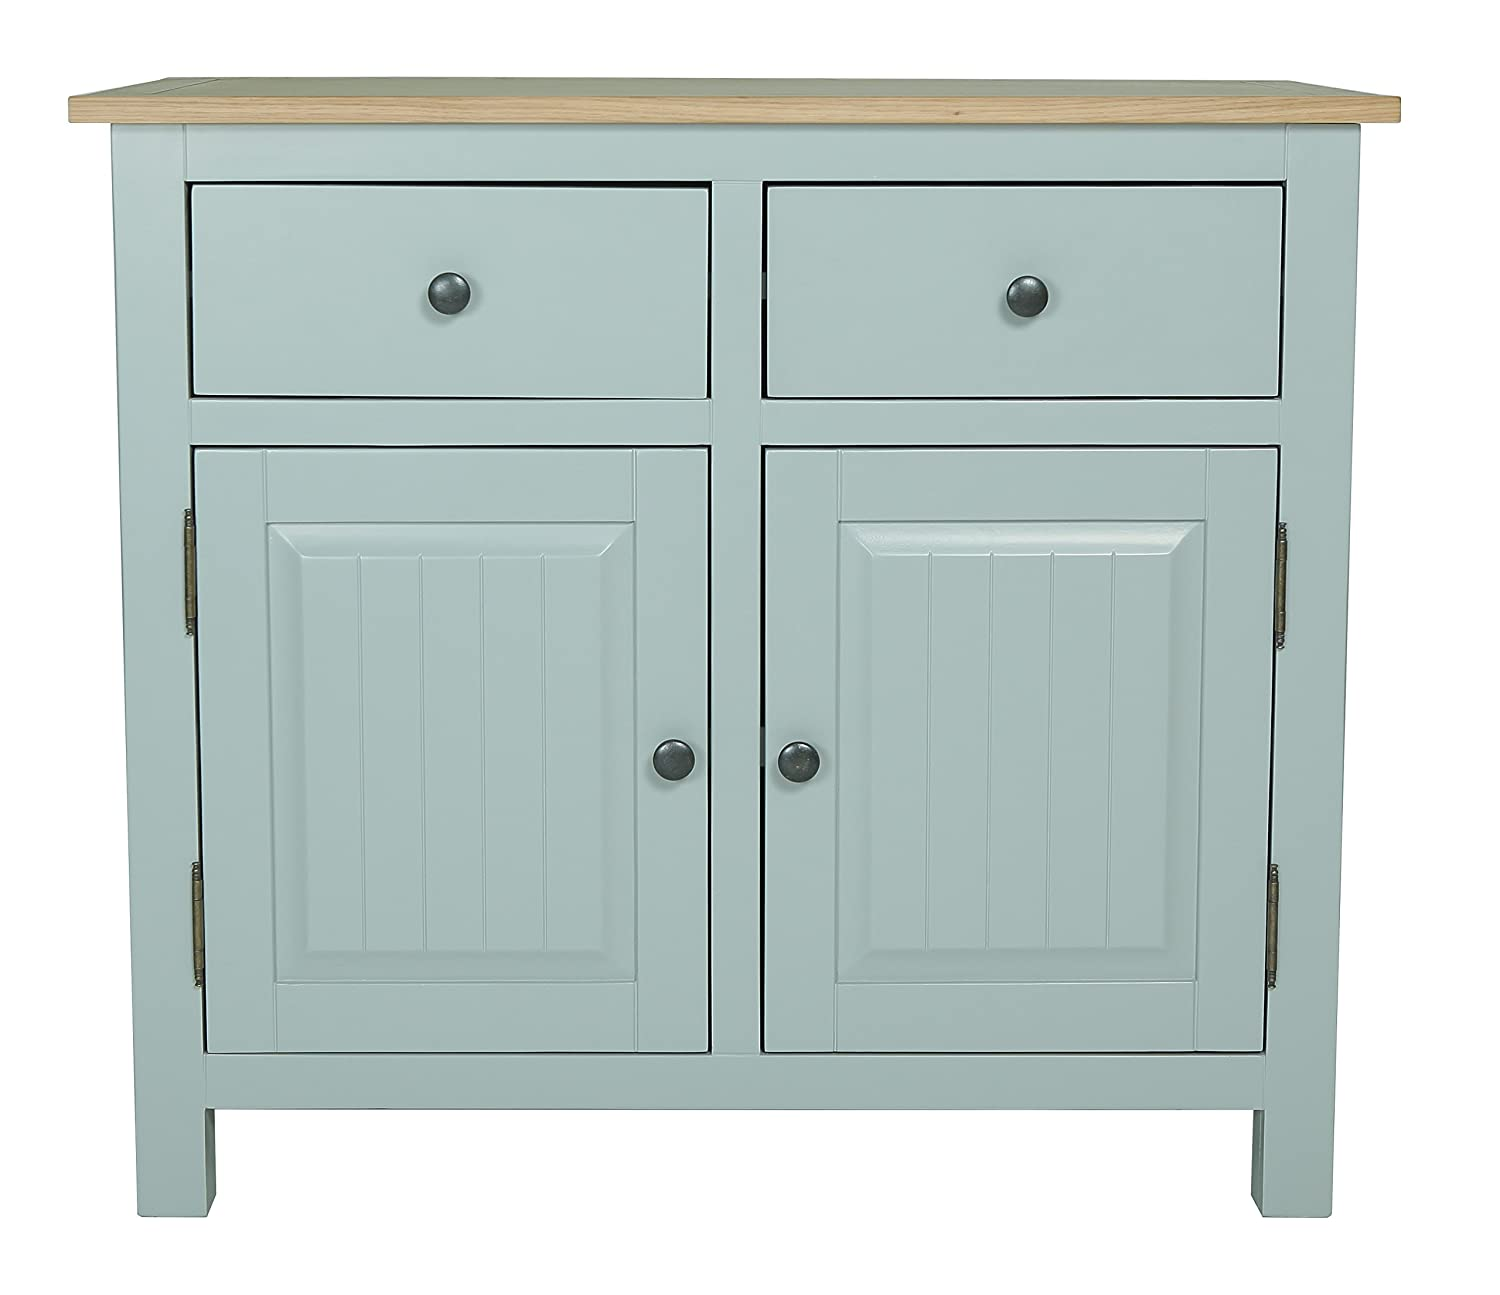 Furniture 247 Newcam Wooden Sideboard, Small - Natural Oak and Cream ...